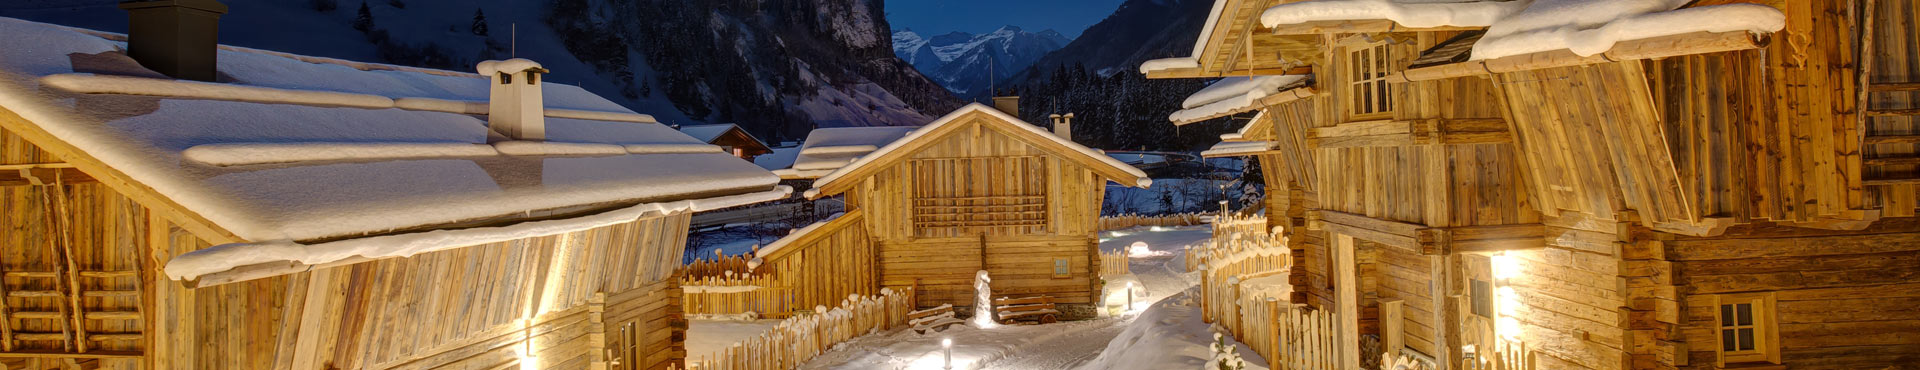 Chalets Winter